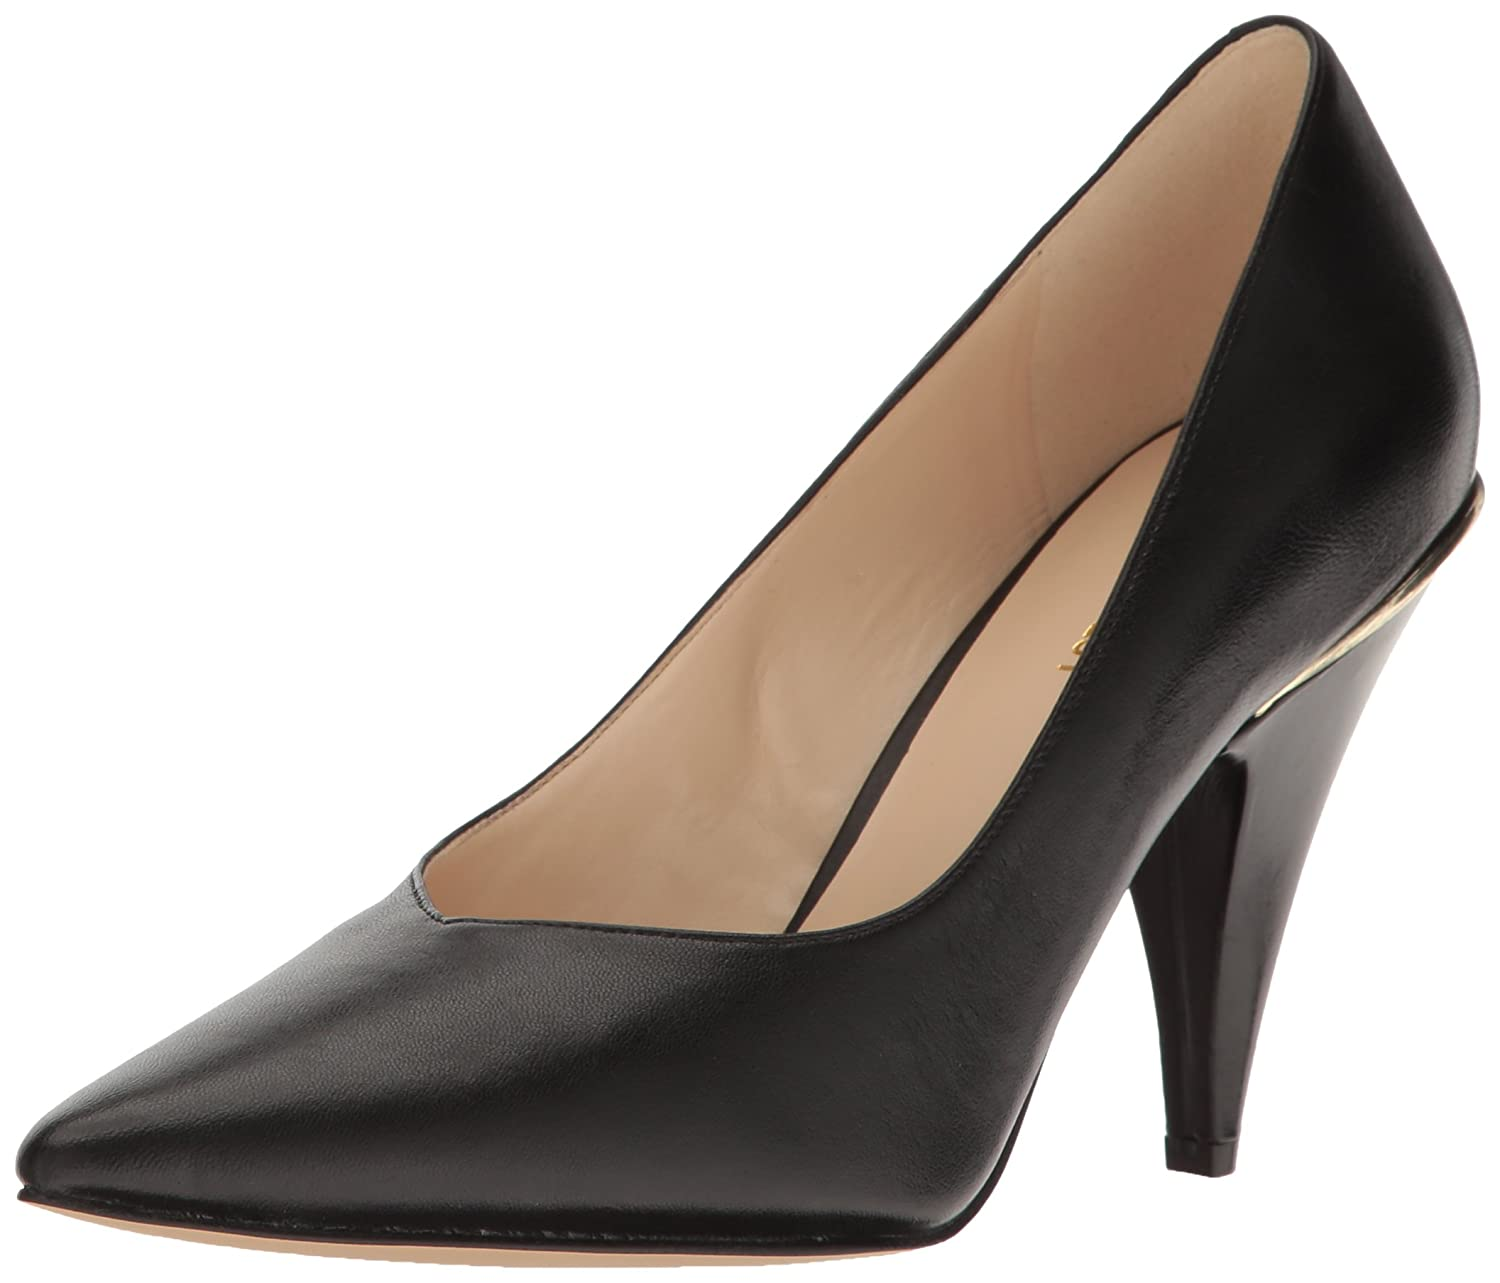 Nine West Women's Whistles Leather Pump B01N5CIY4Y 9 B(M) US|Black